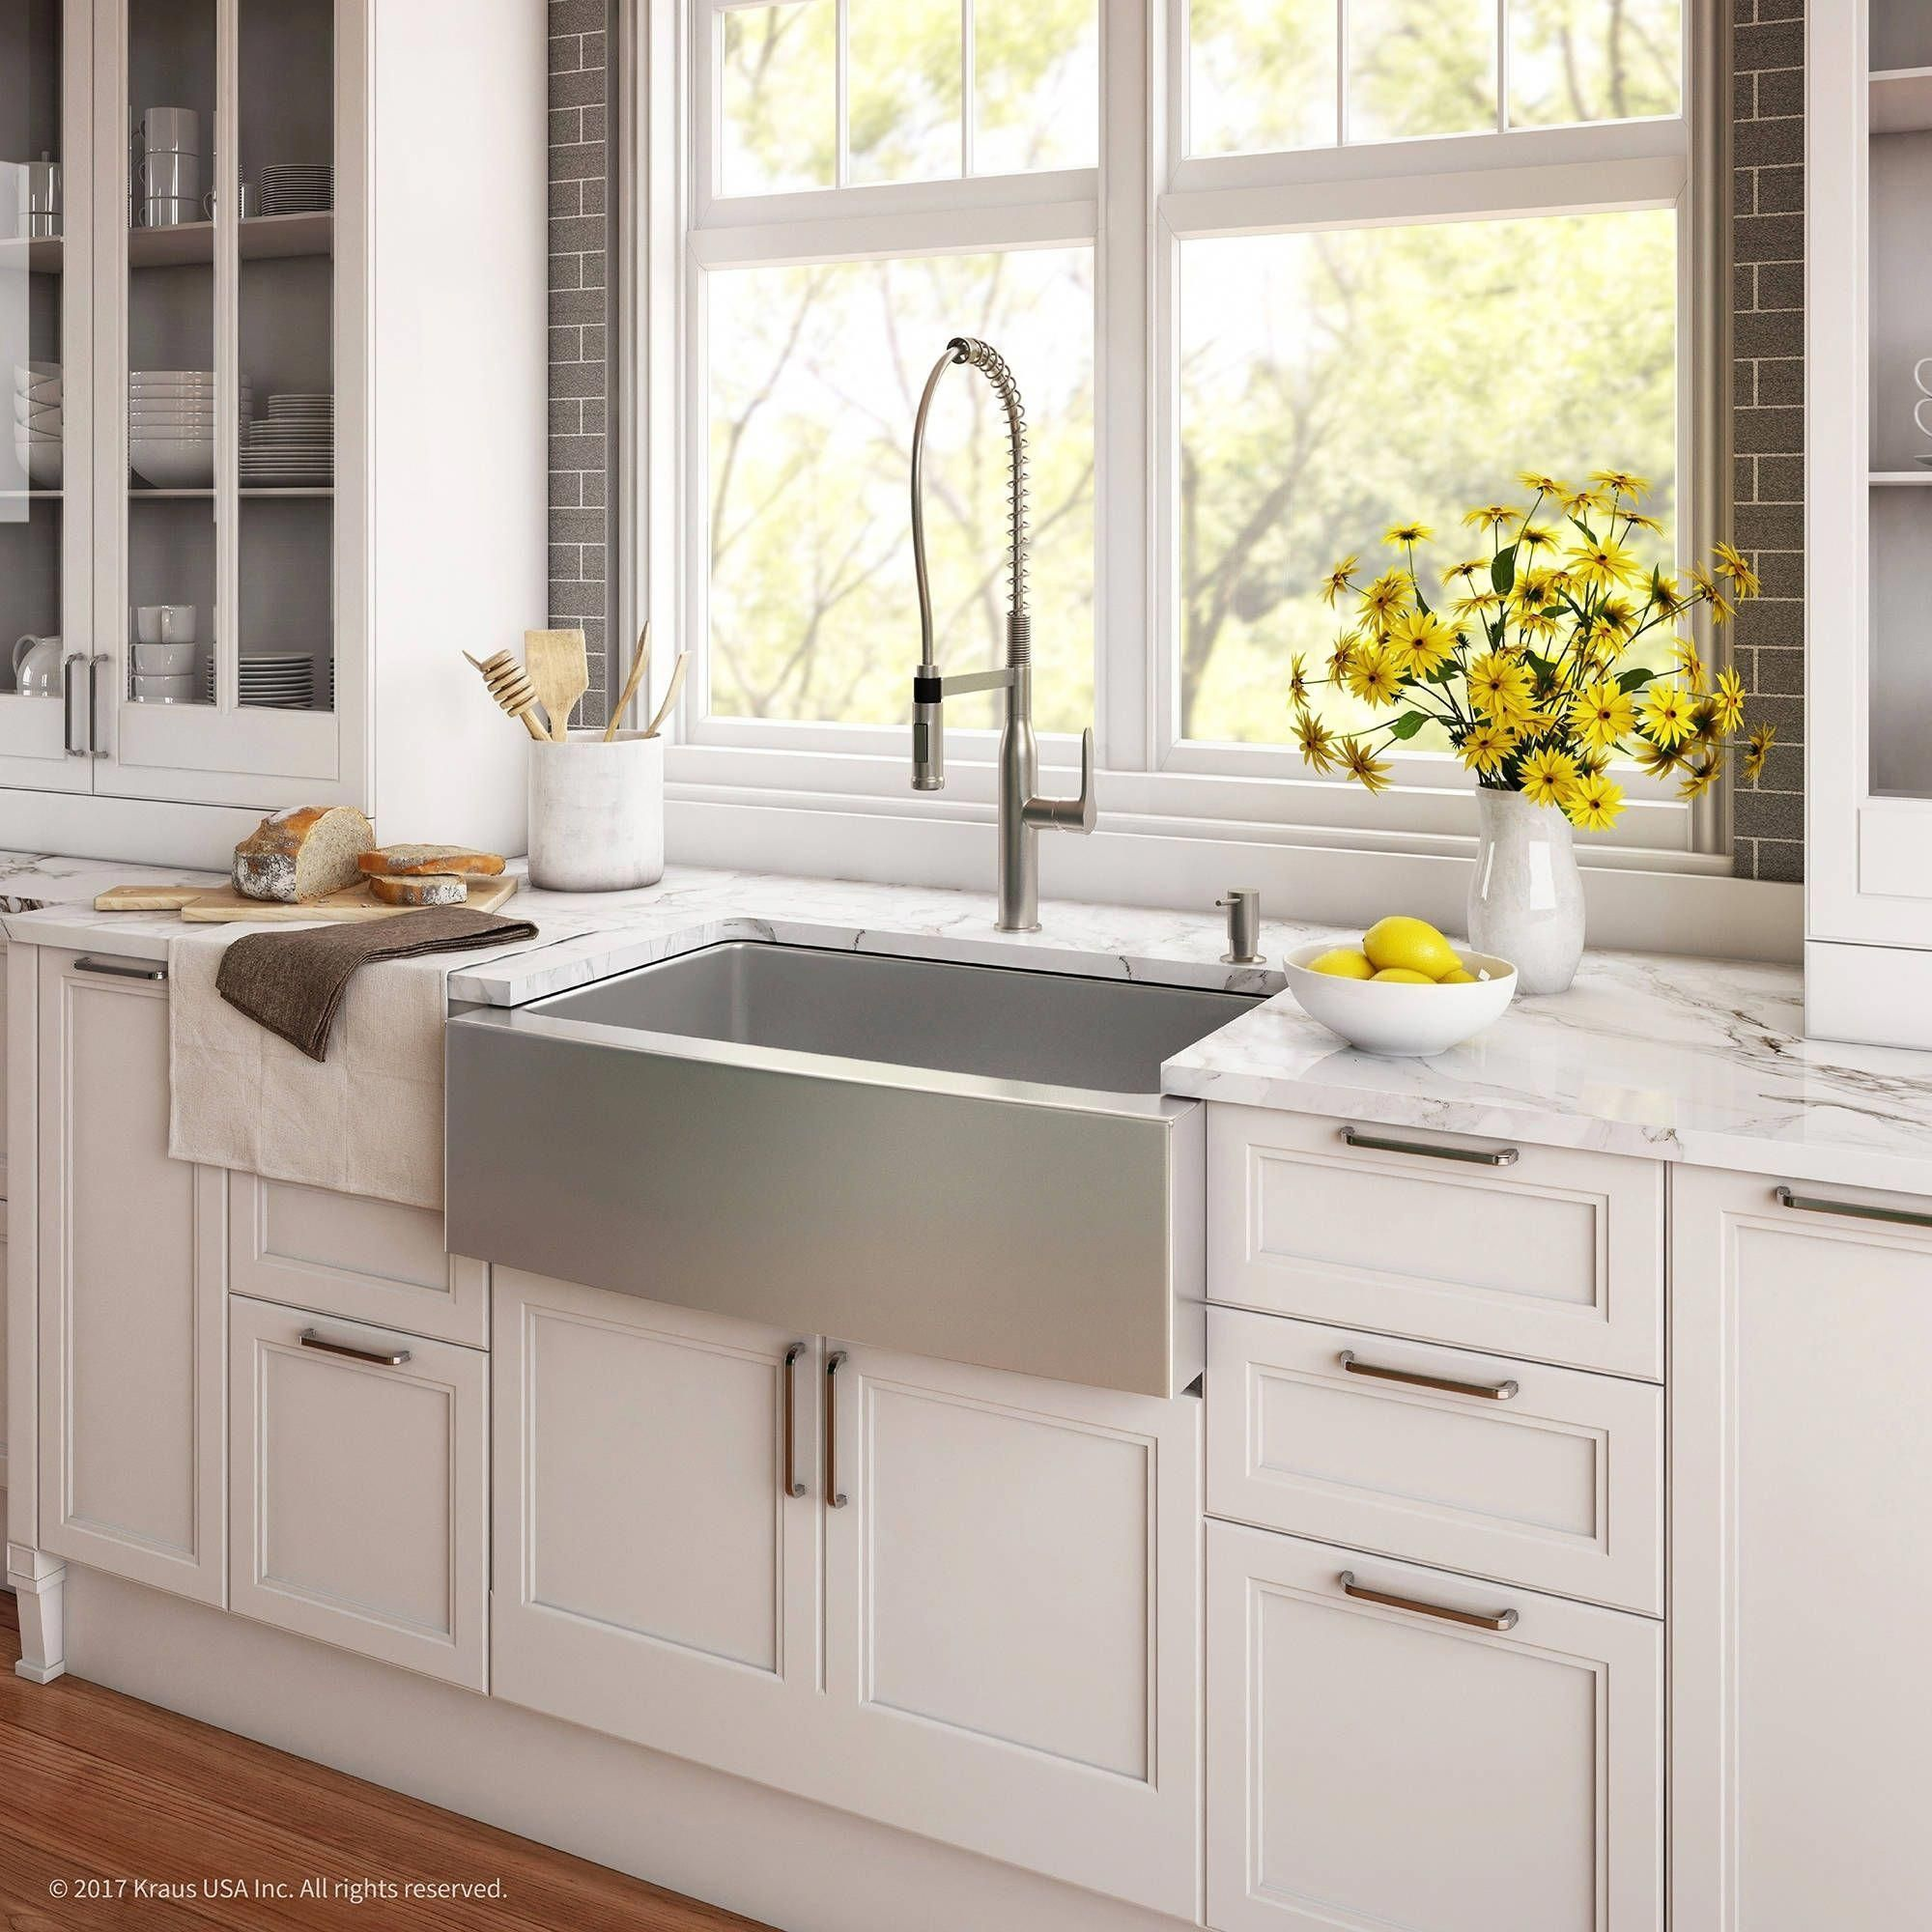 Kraus 30 Farmhouse Sink With Nola Commercial Faucet Soap Dispenser Stainless Steel Finish Silver Luxu Kitchen Remodel Kitchen Design Kitchen Sink Remodel